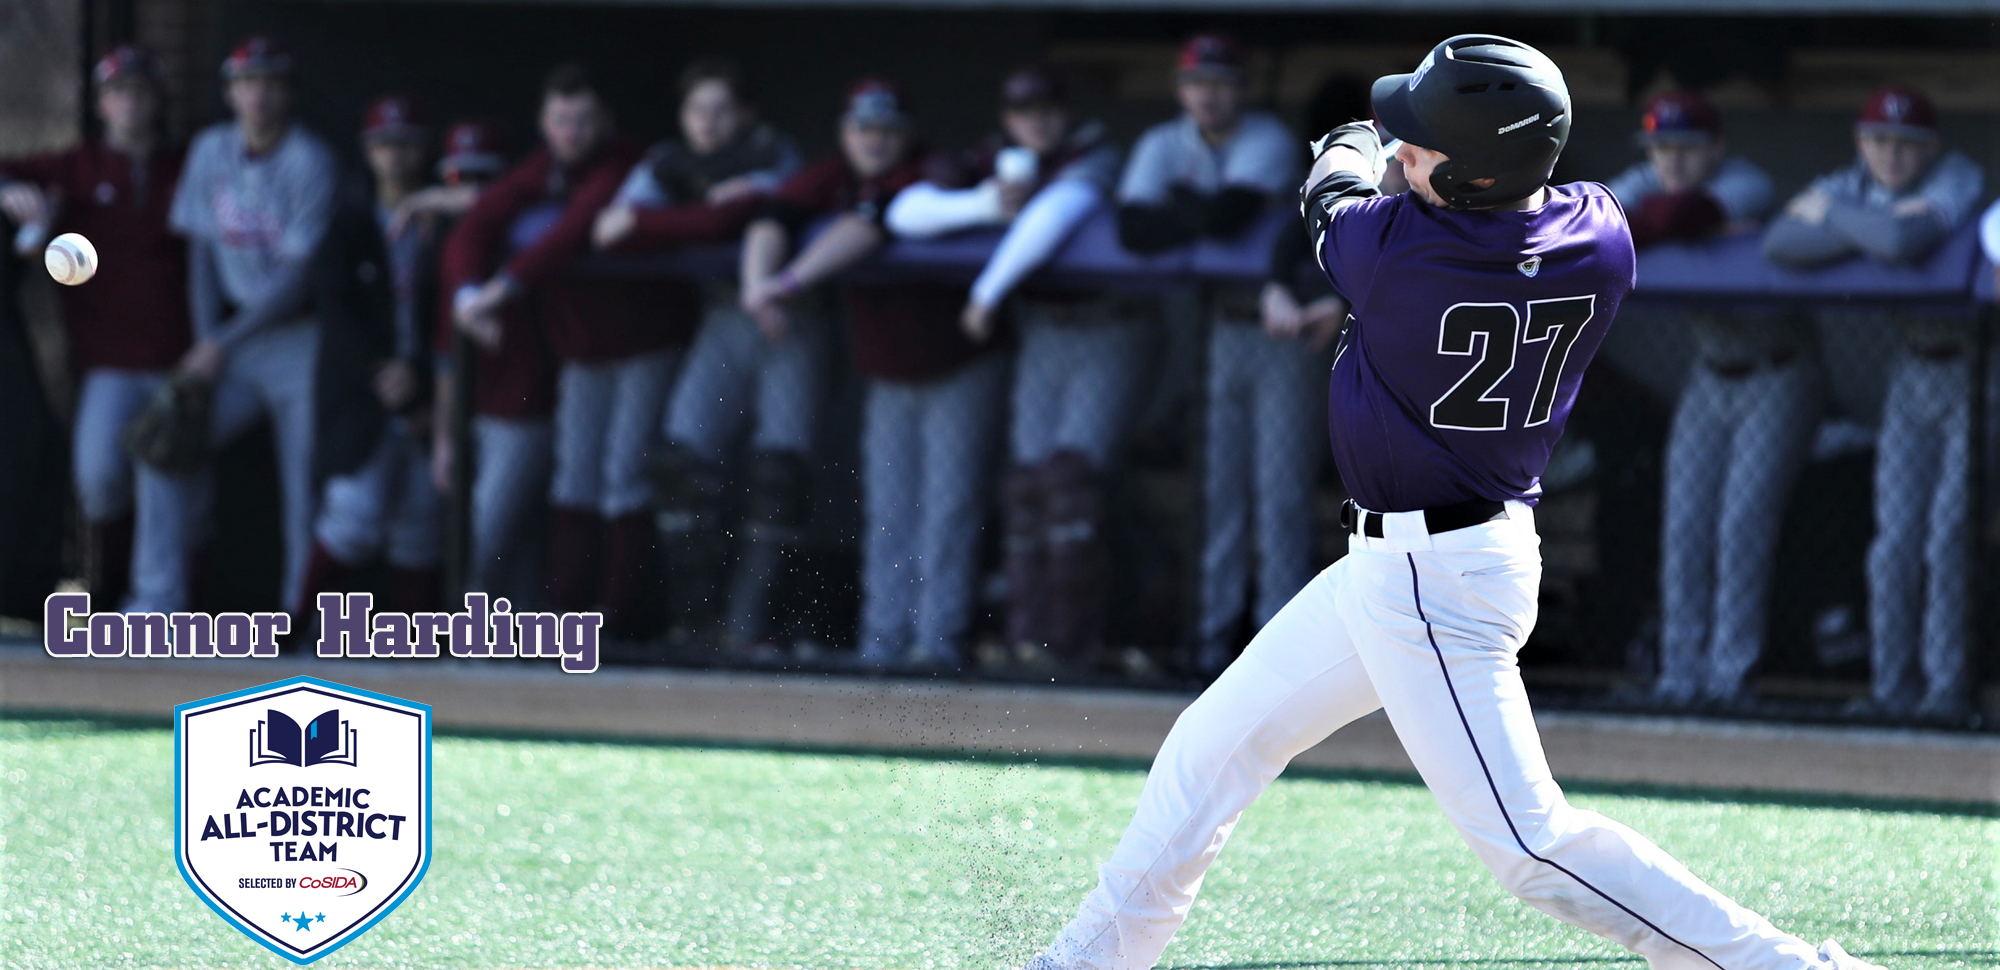 Junior outfielder Connor Harding of The University of Scranton baseball team earned CoSIDA Academic All-District First Team honors as announced by the organization on Thursday.